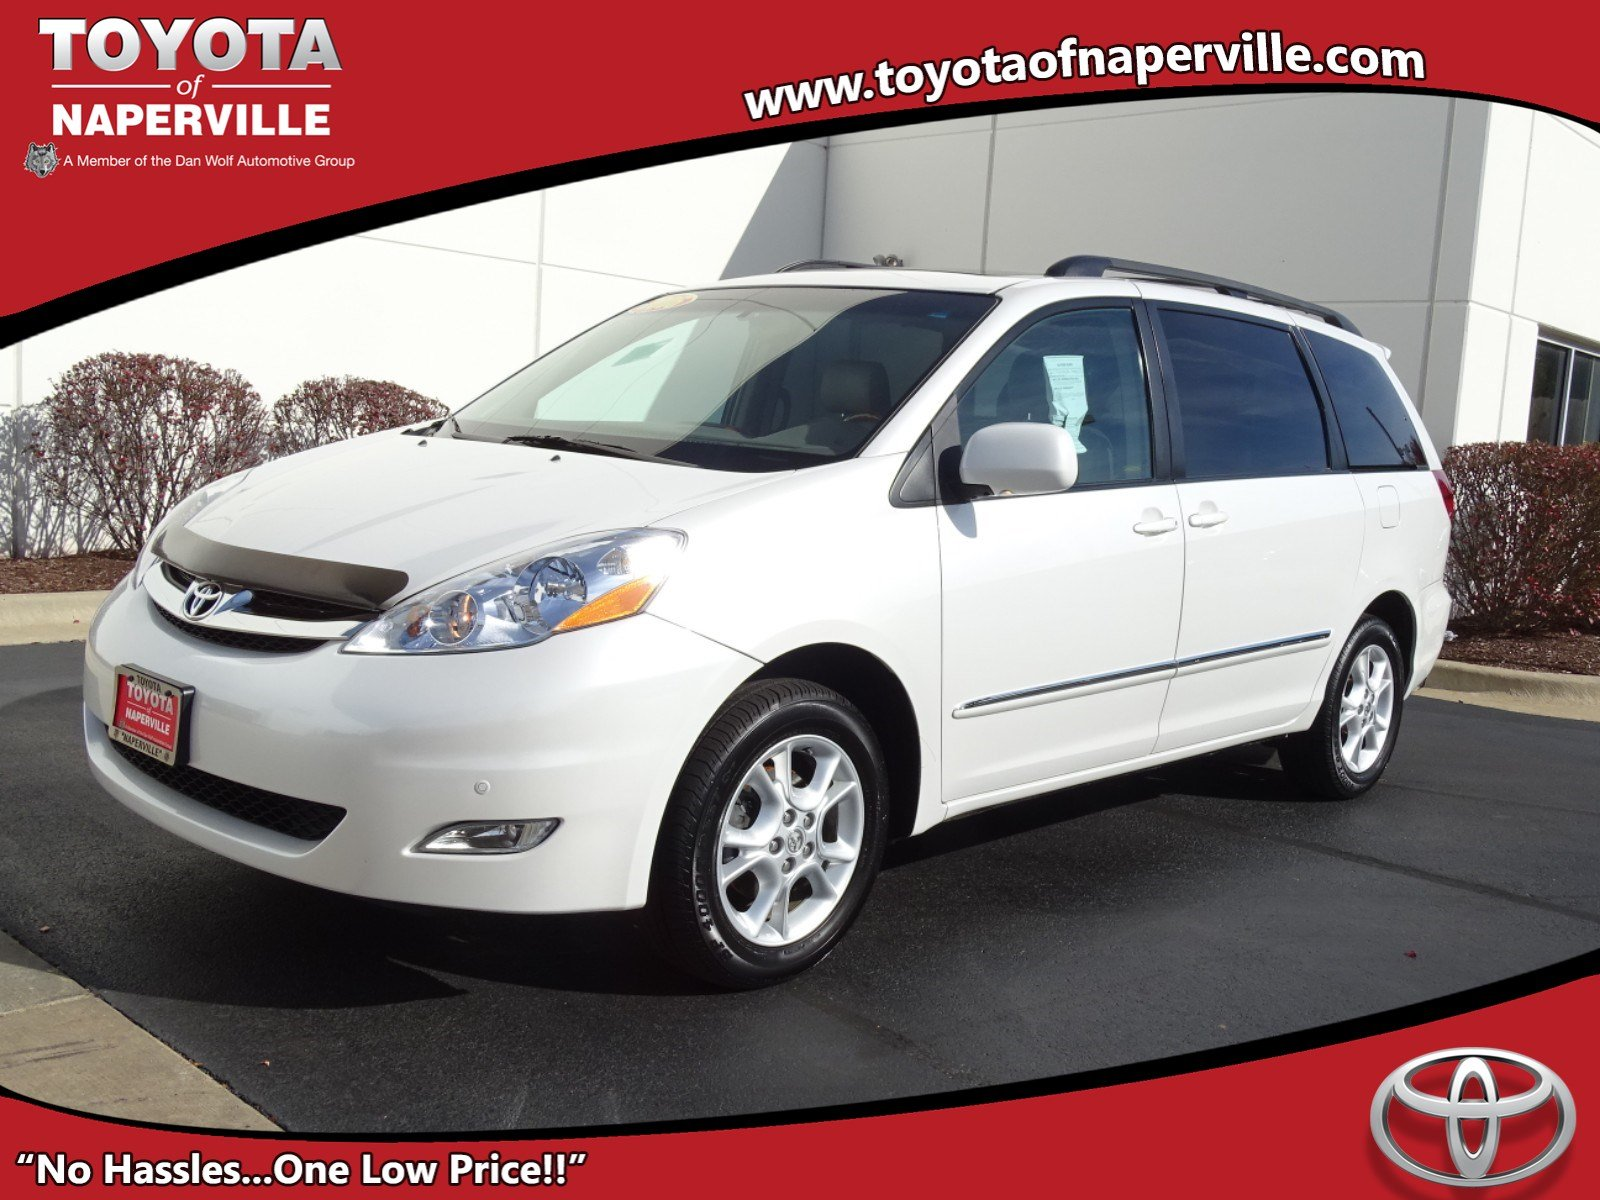 PreOwned 2006 Toyota Sienna XLE Limited 4D Passenger Van in